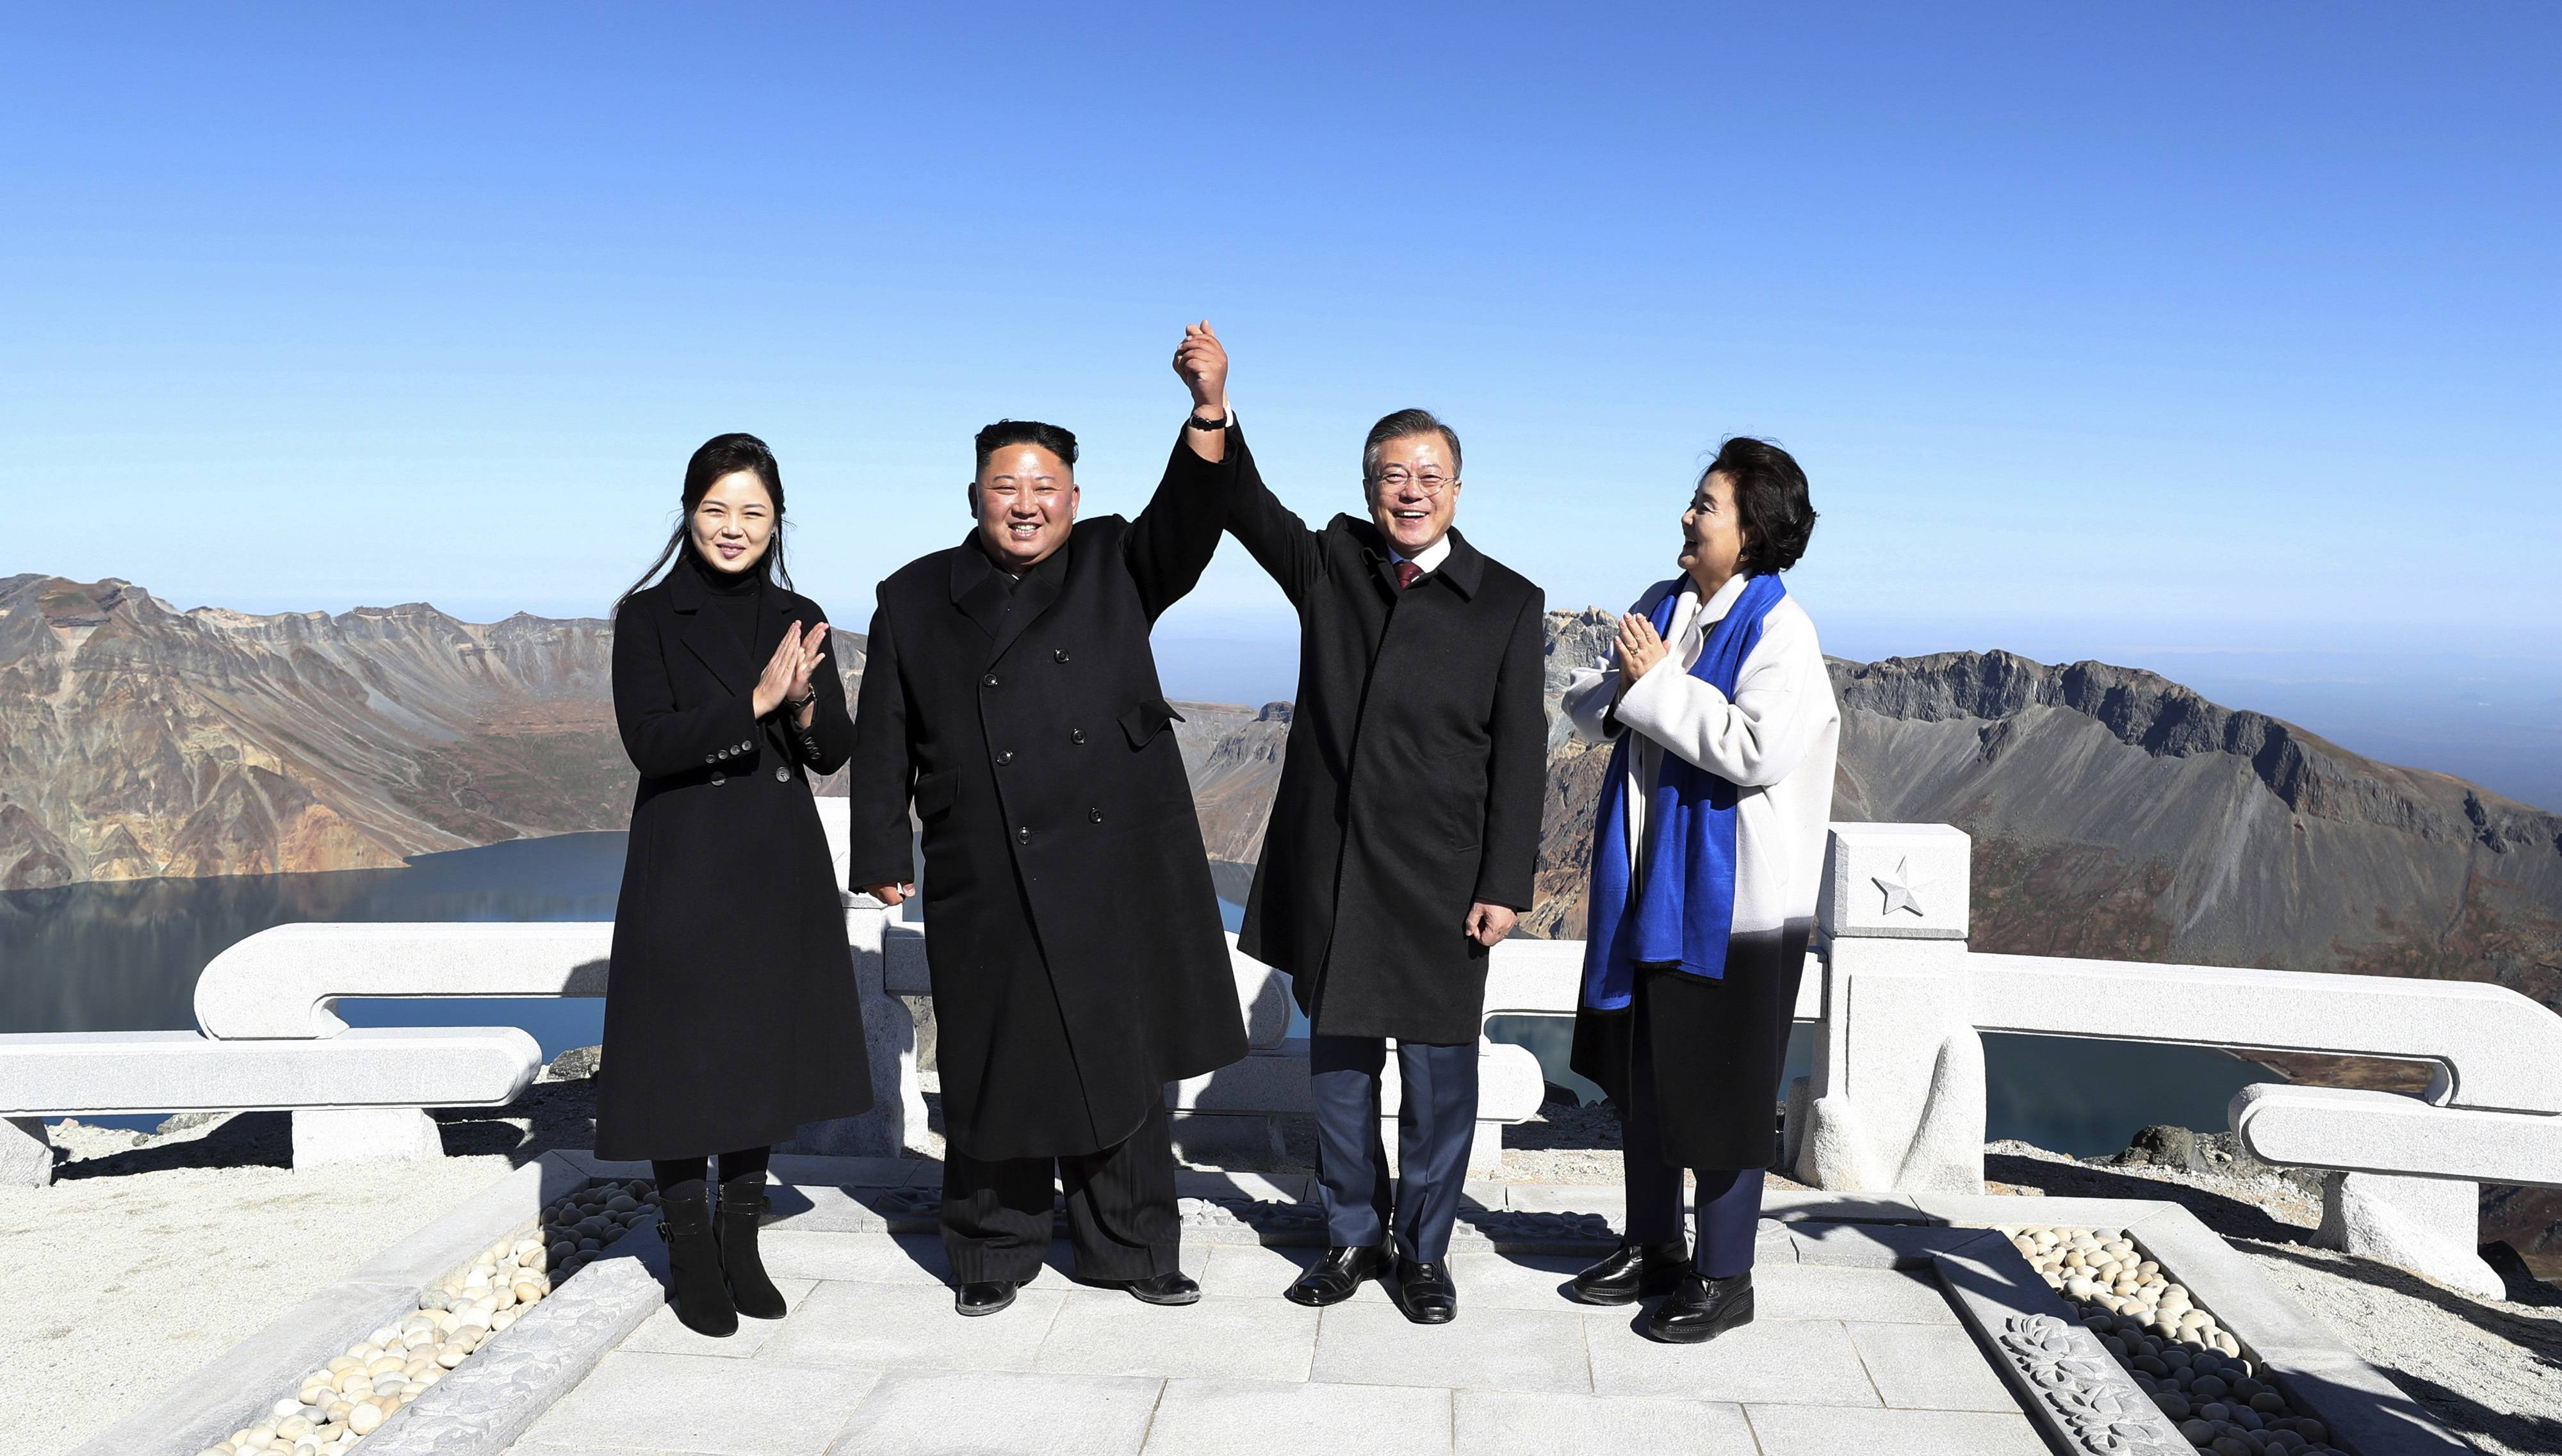 South Korean President Moon Jae-in, second from right, and his wife Kim Jung-sook, right, stand with North Korean leader Kim Jong Un, second from left, and his wife Ri Sol Ju on the Mount Paektu in North Korea, Thursday, Sept. 20, 2018.